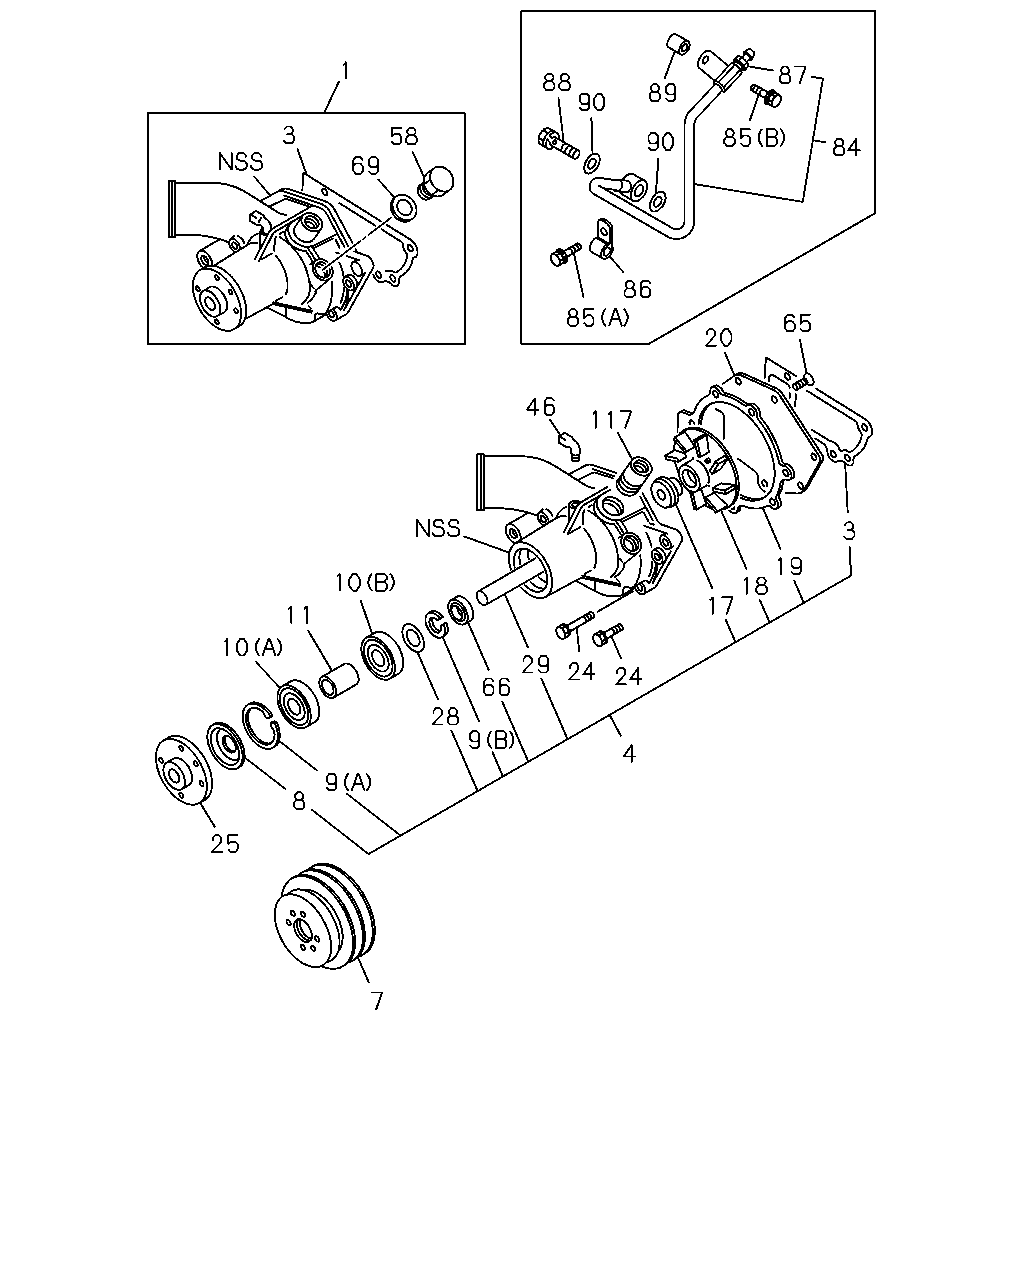 Mr 10663 91 95 0 Engine Emission Electrical 6bb1 Isuzu Diagram Code